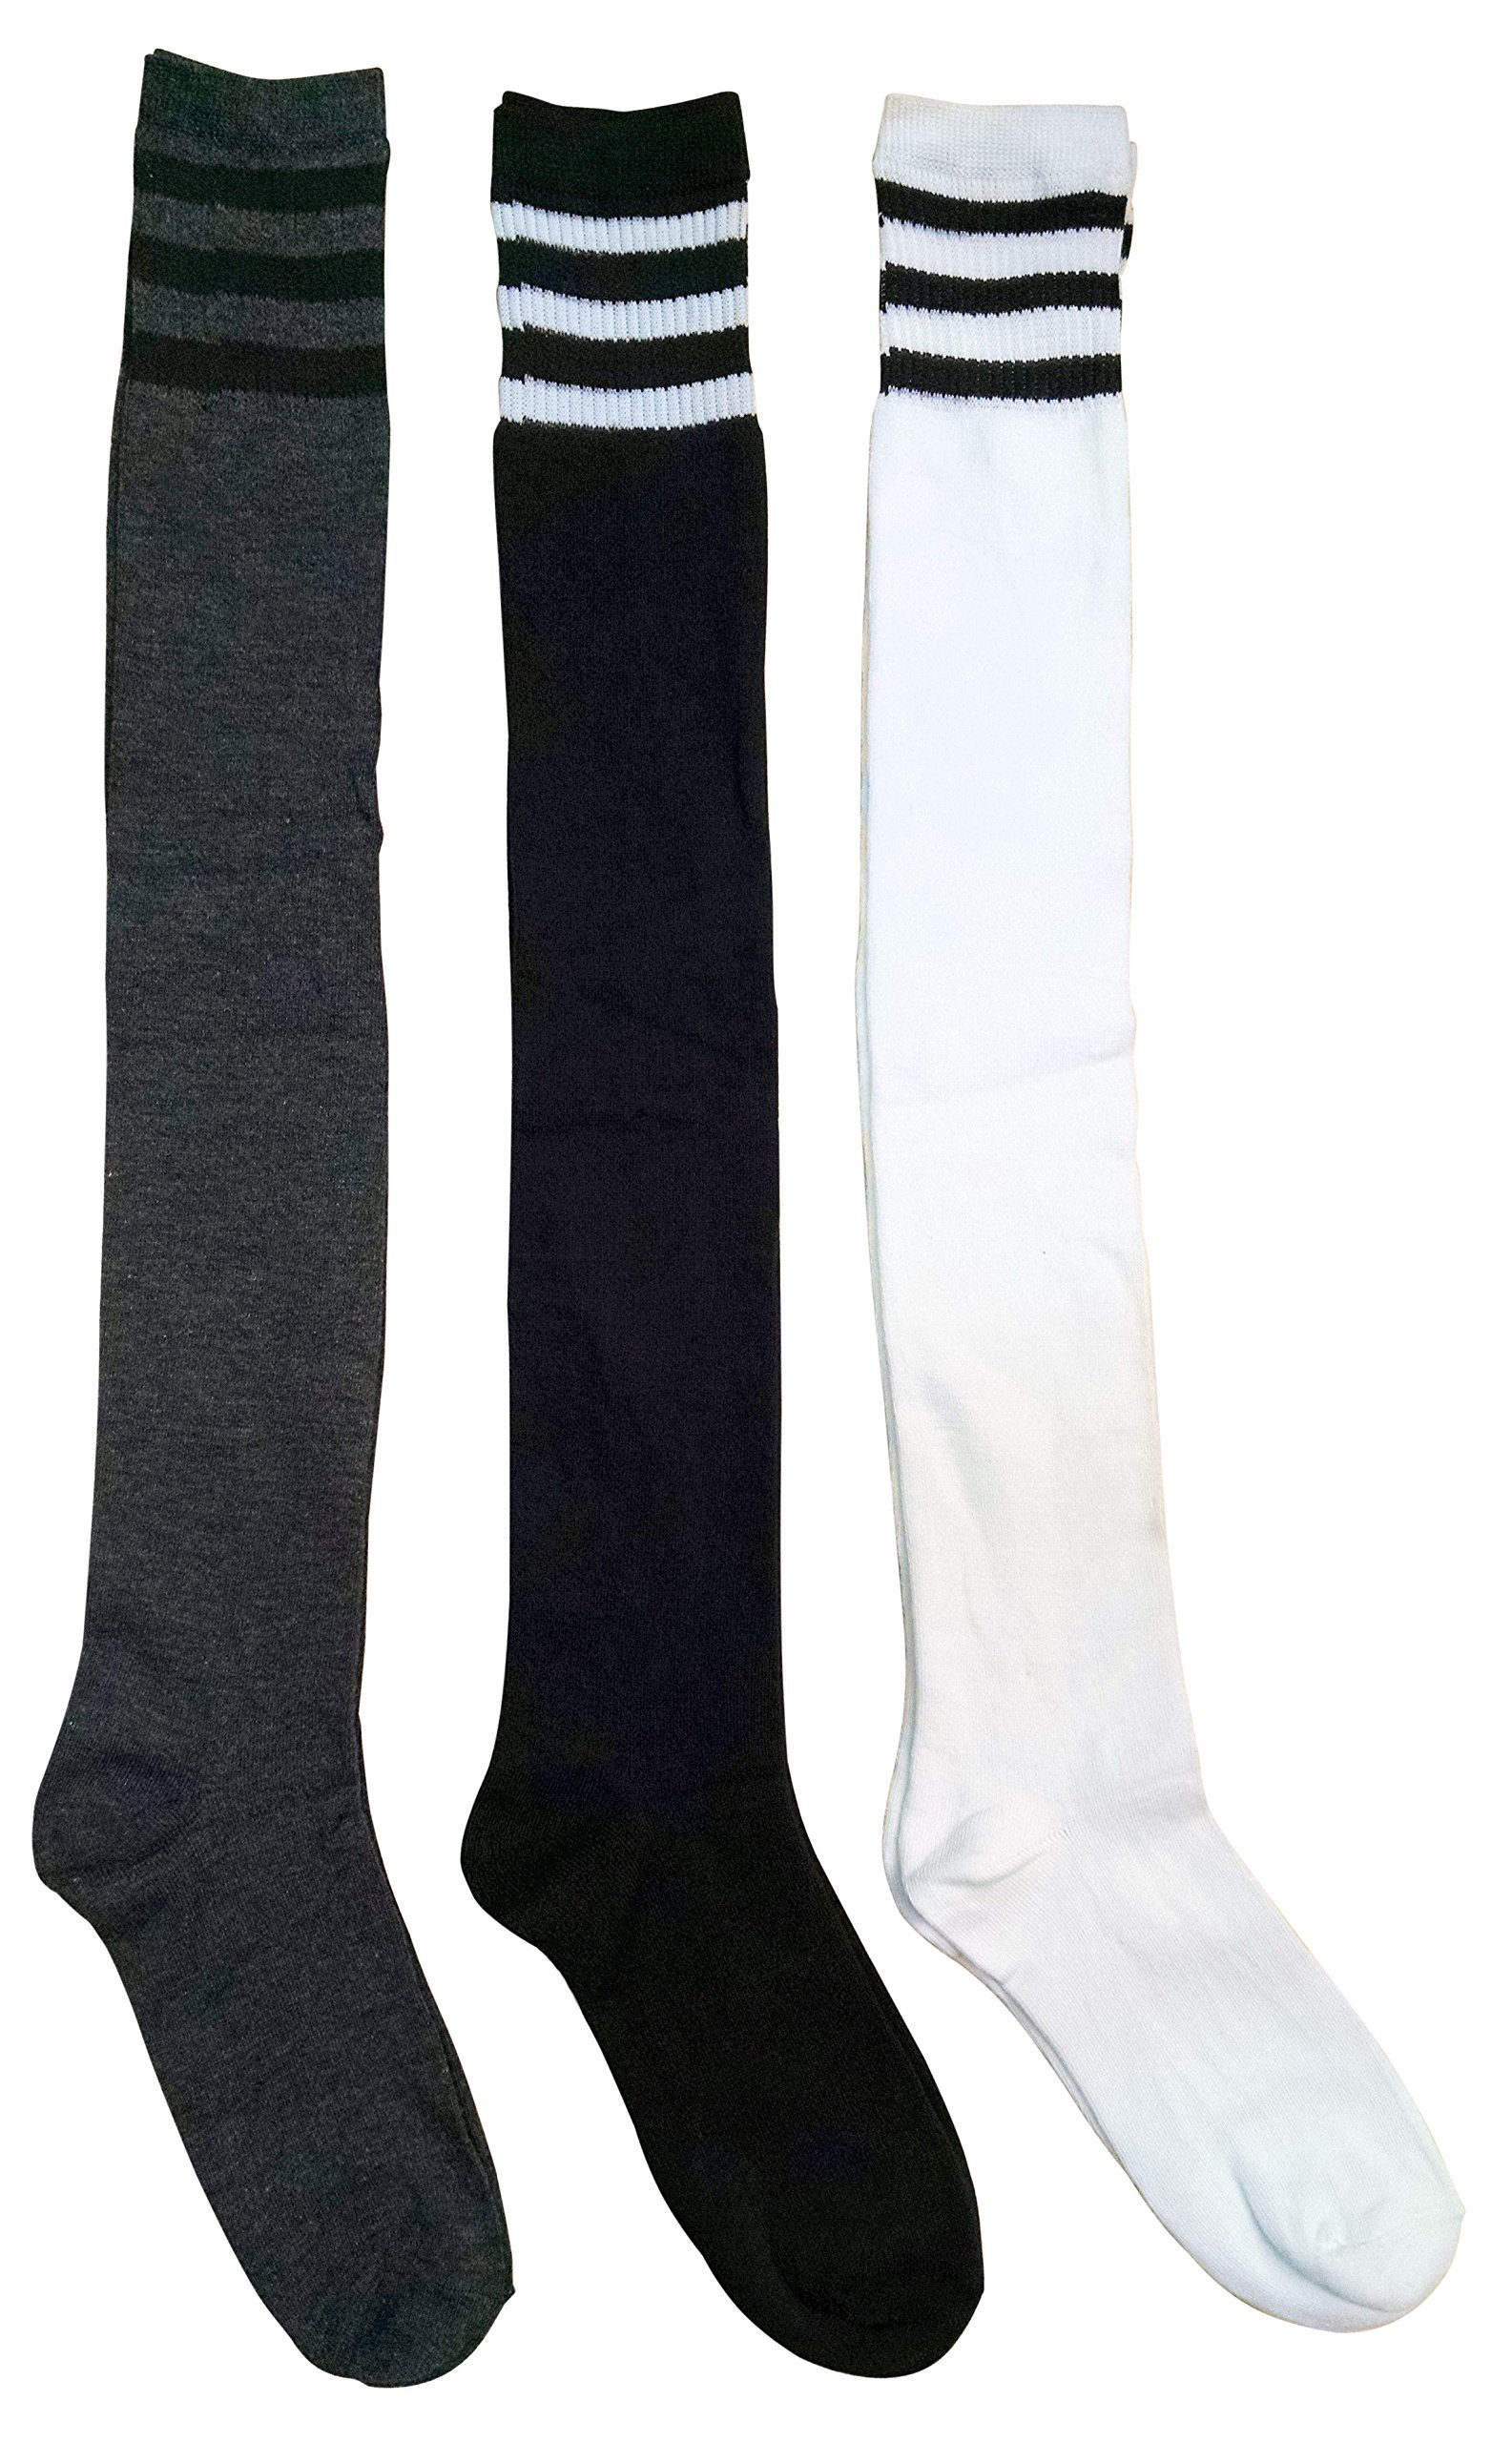 3 Pair excell Women's Over the Knee Thigh High Referee Socks